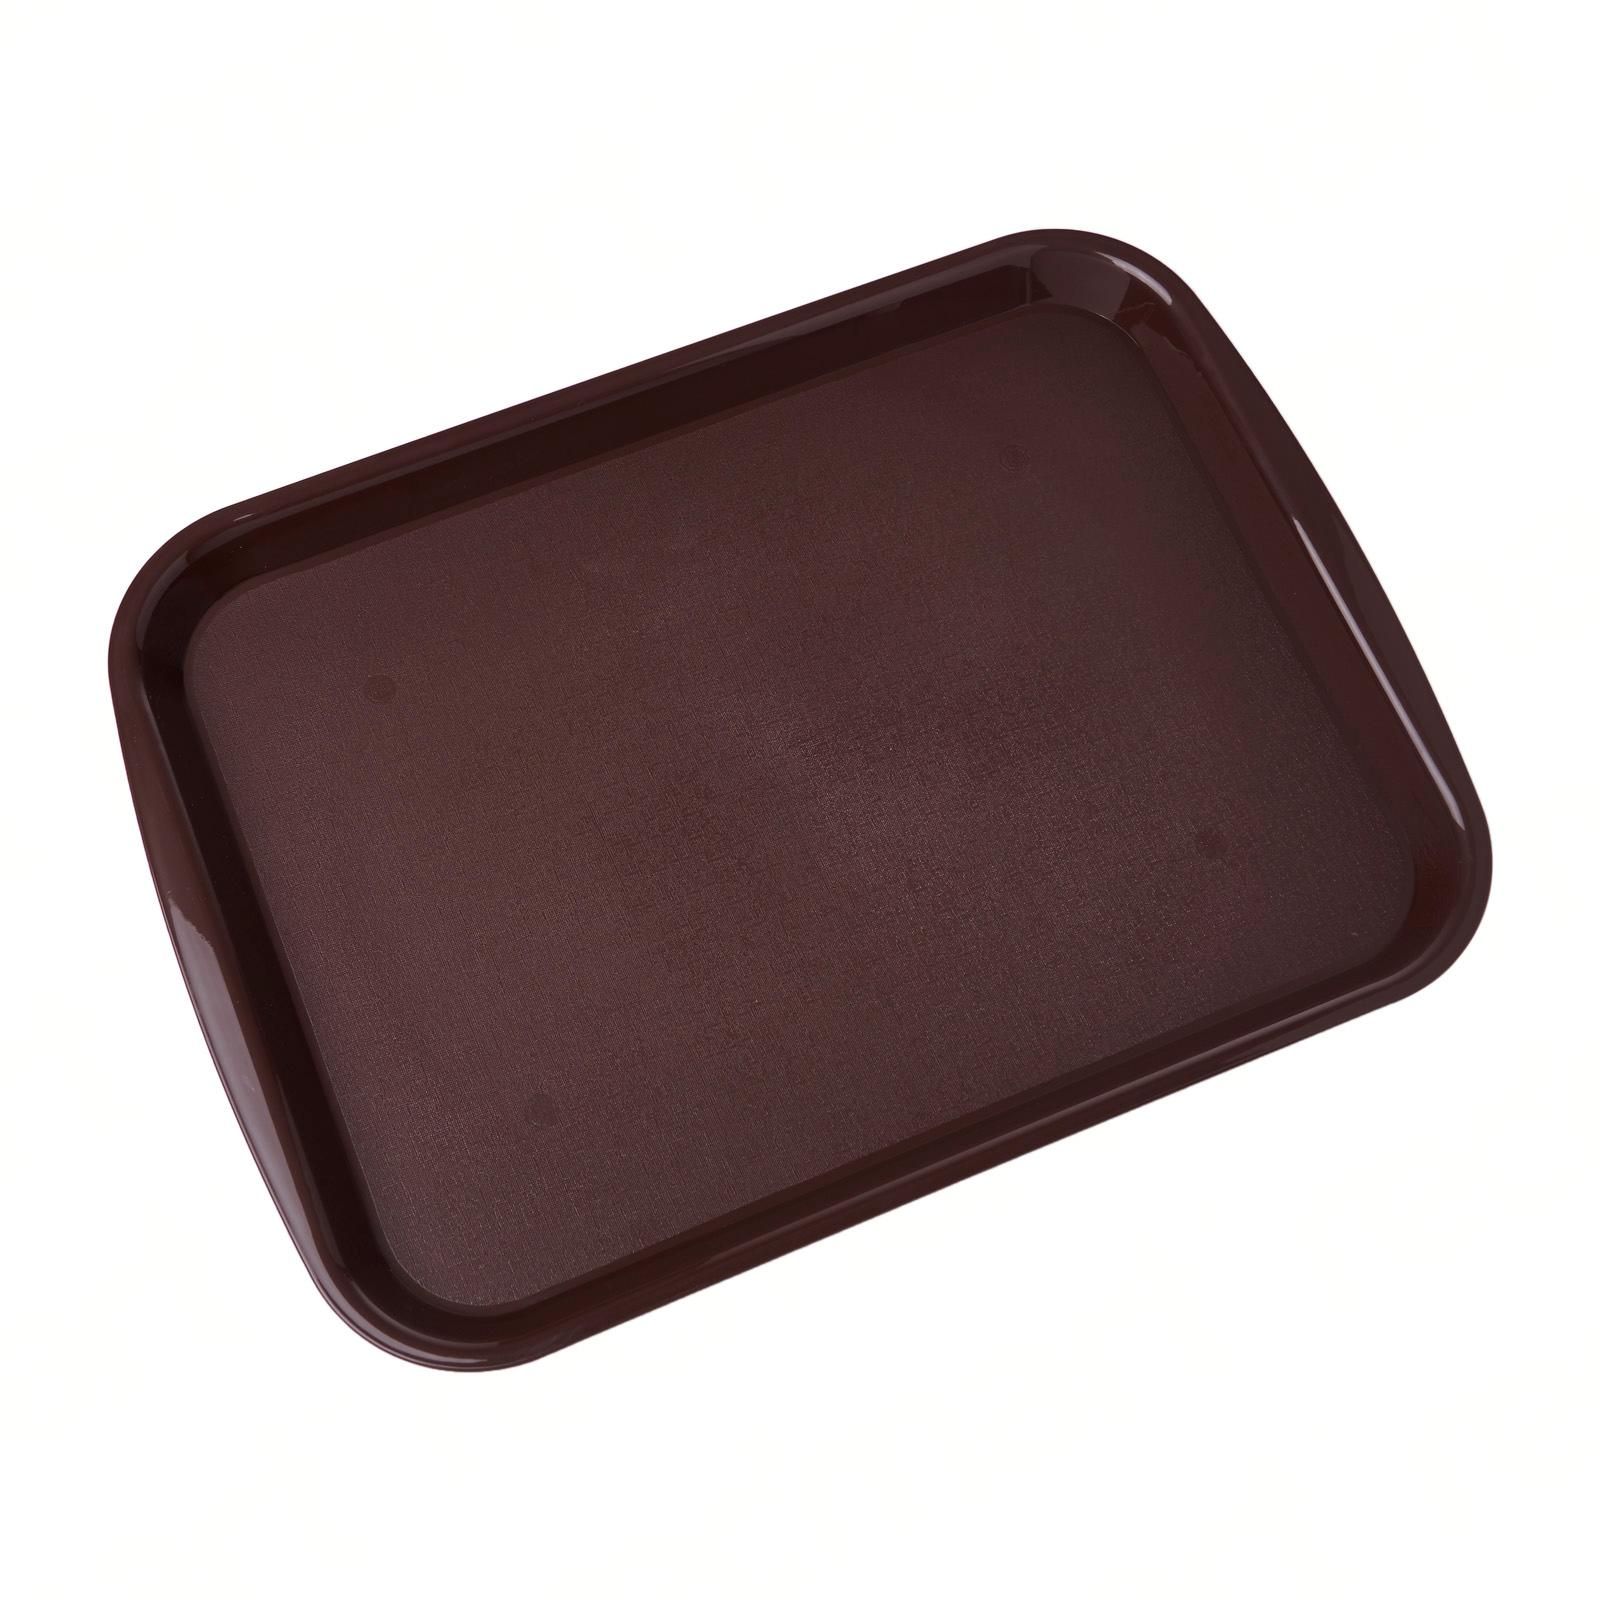 SUNNEX Fast Food Polypropylene Tray With Side Handles 36.5x27cm Brown